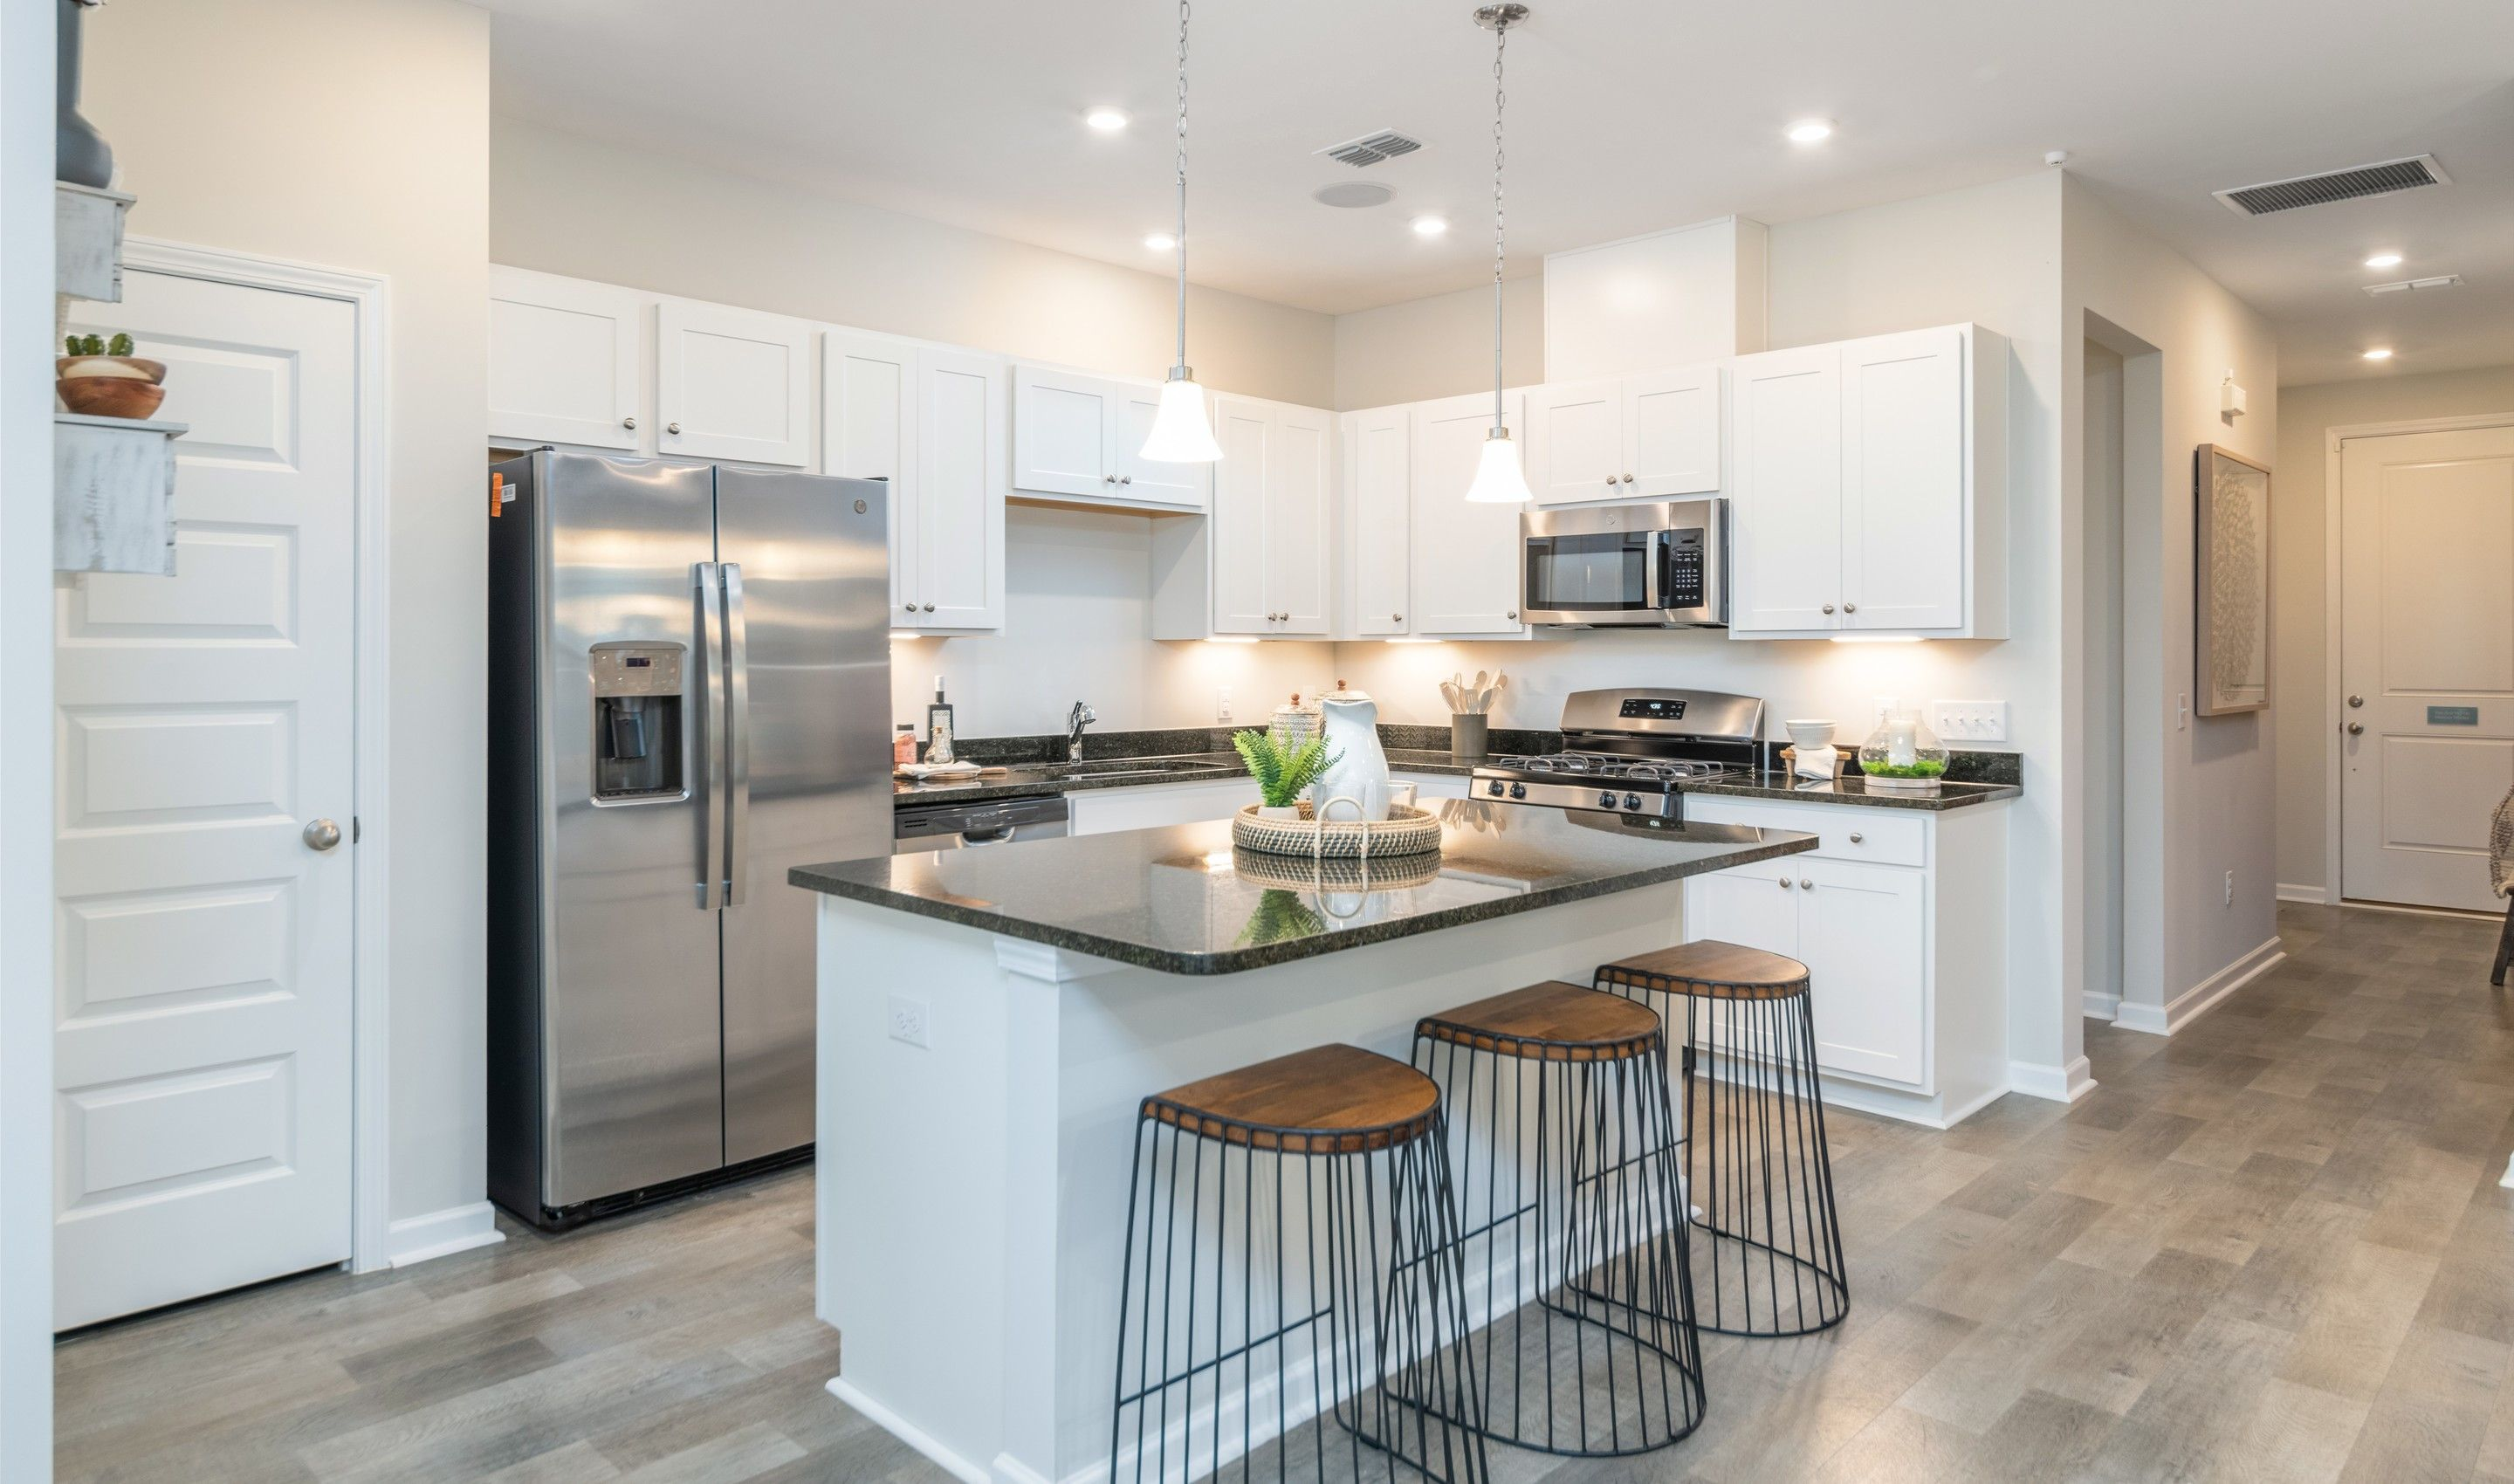 Kitchen featured in the Mercer By K. Hovnanian® Homes in Hilton Head, SC